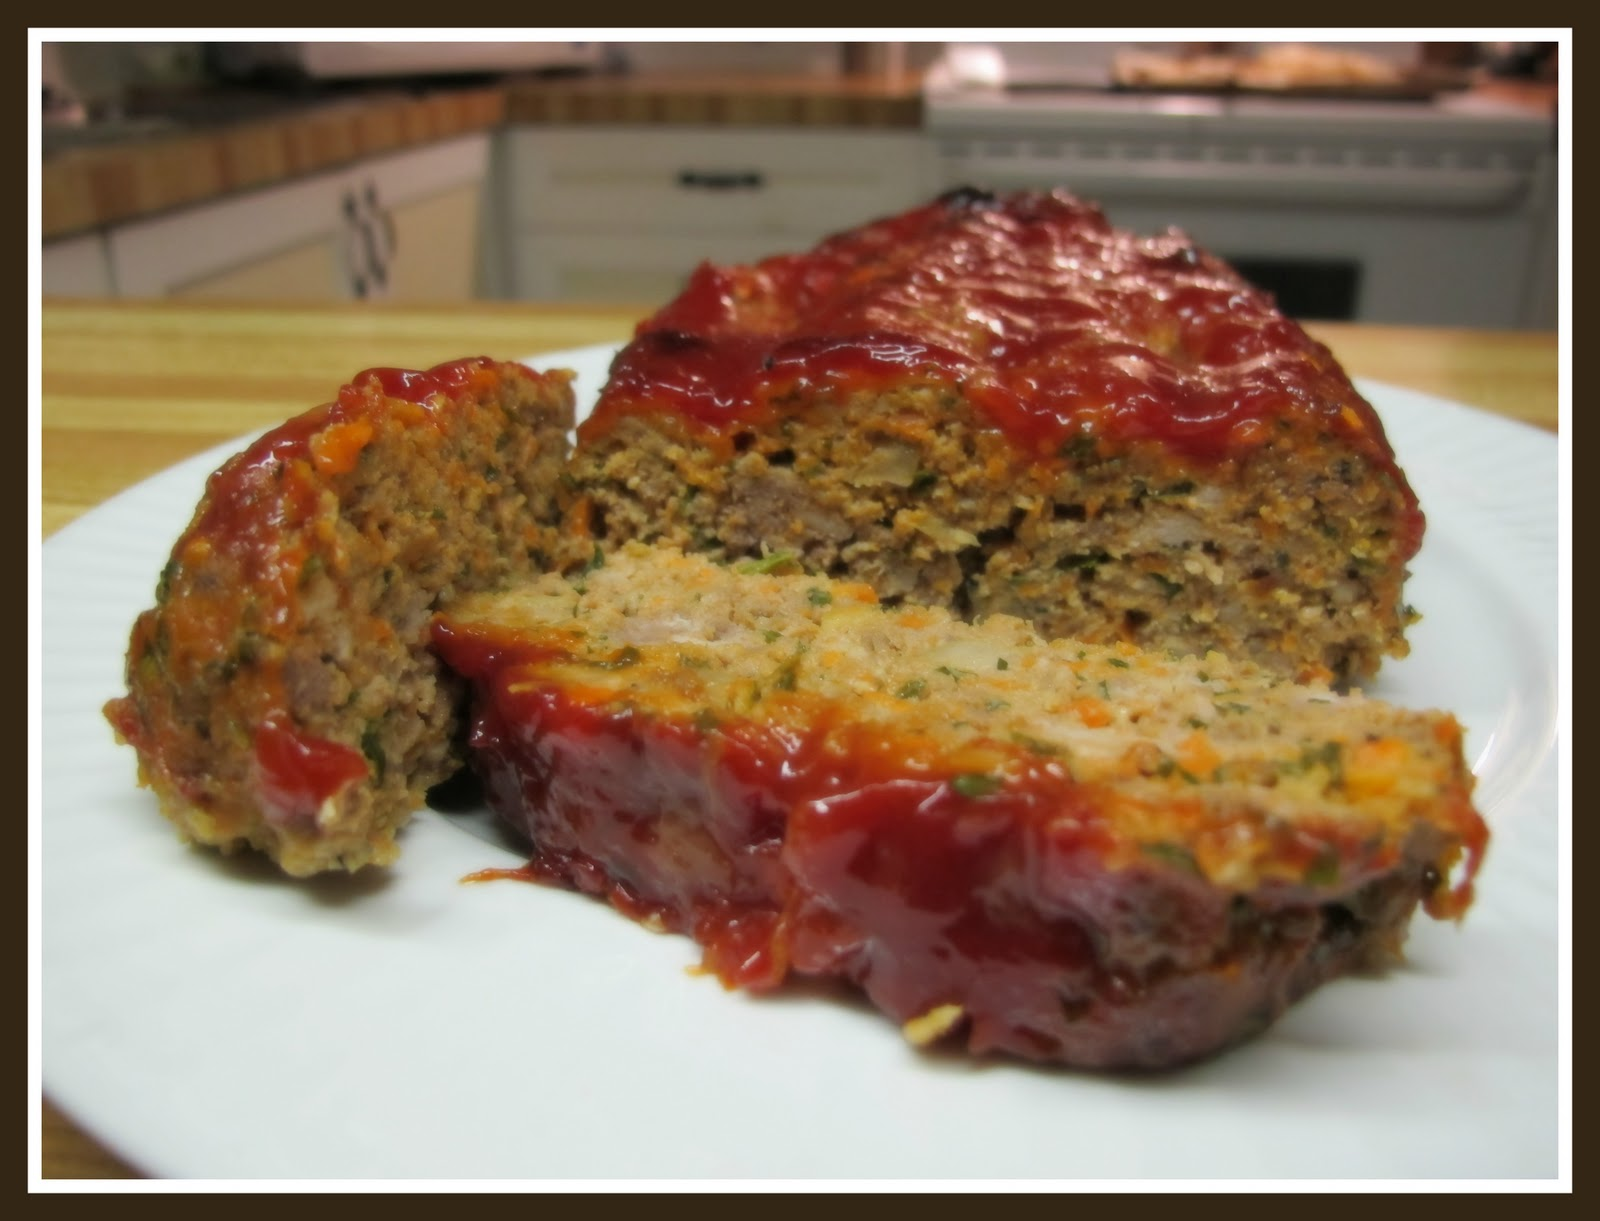 ... mrs kostyra meatloaf 101 with mrs kostyra recipes from mrs kostyra